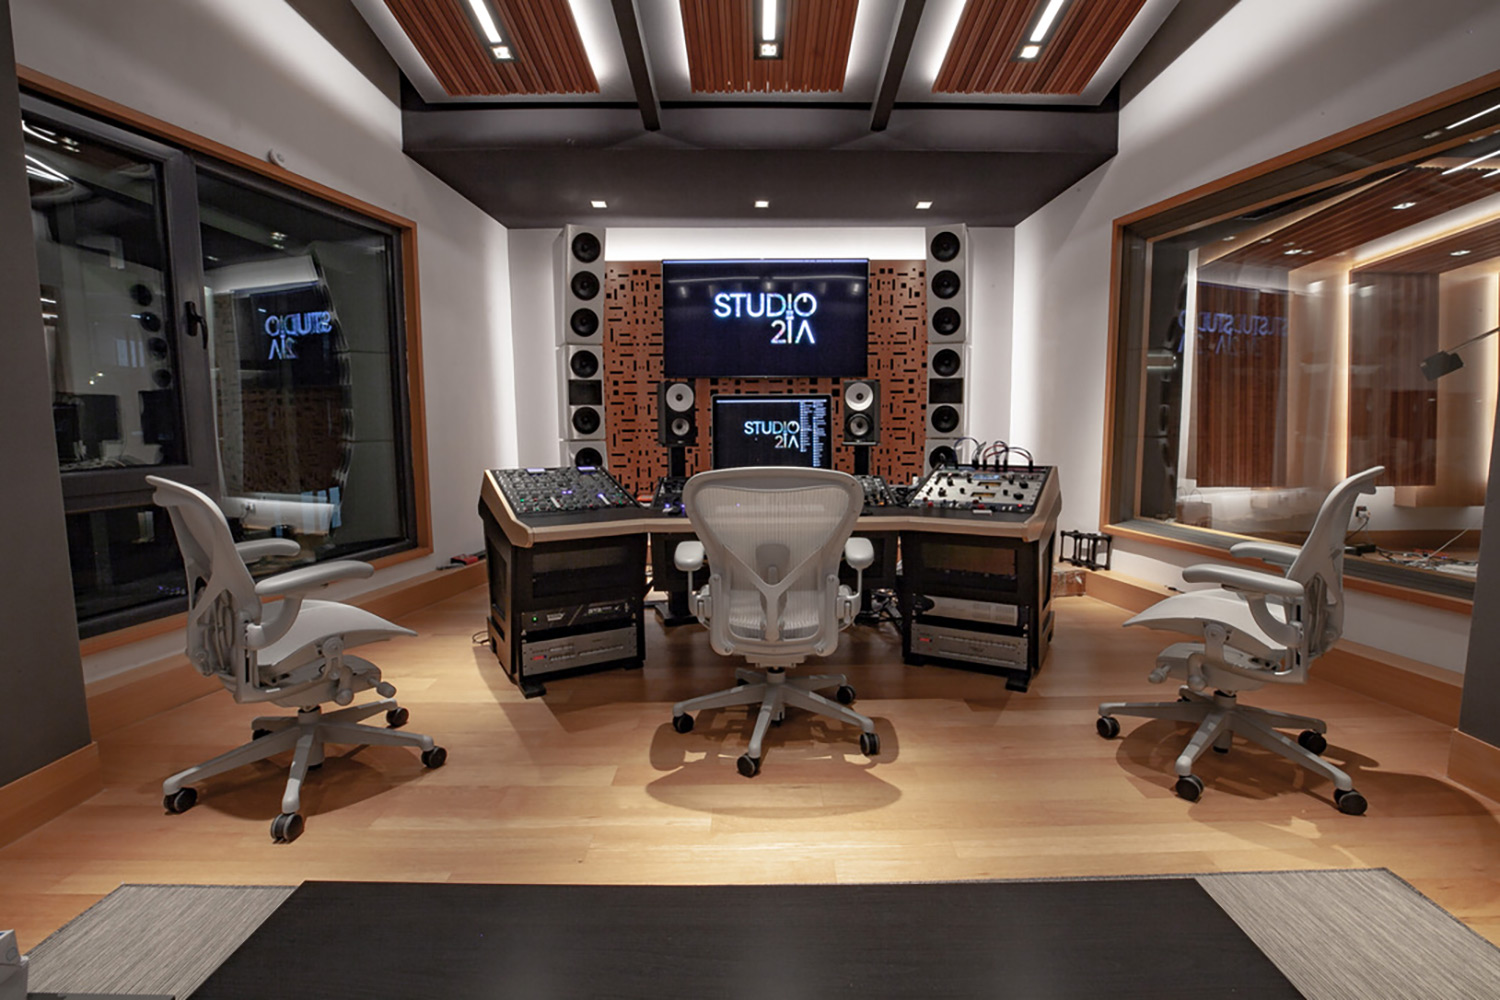 Intrigued by WSDG's reputation in designing the best recording studios in the world, multi-talented recording and mixing engineer TC Zhou started a deep collaboration with our global team for his brand-new studio facility in Beijing, China. Control Room A Mastering Suite.